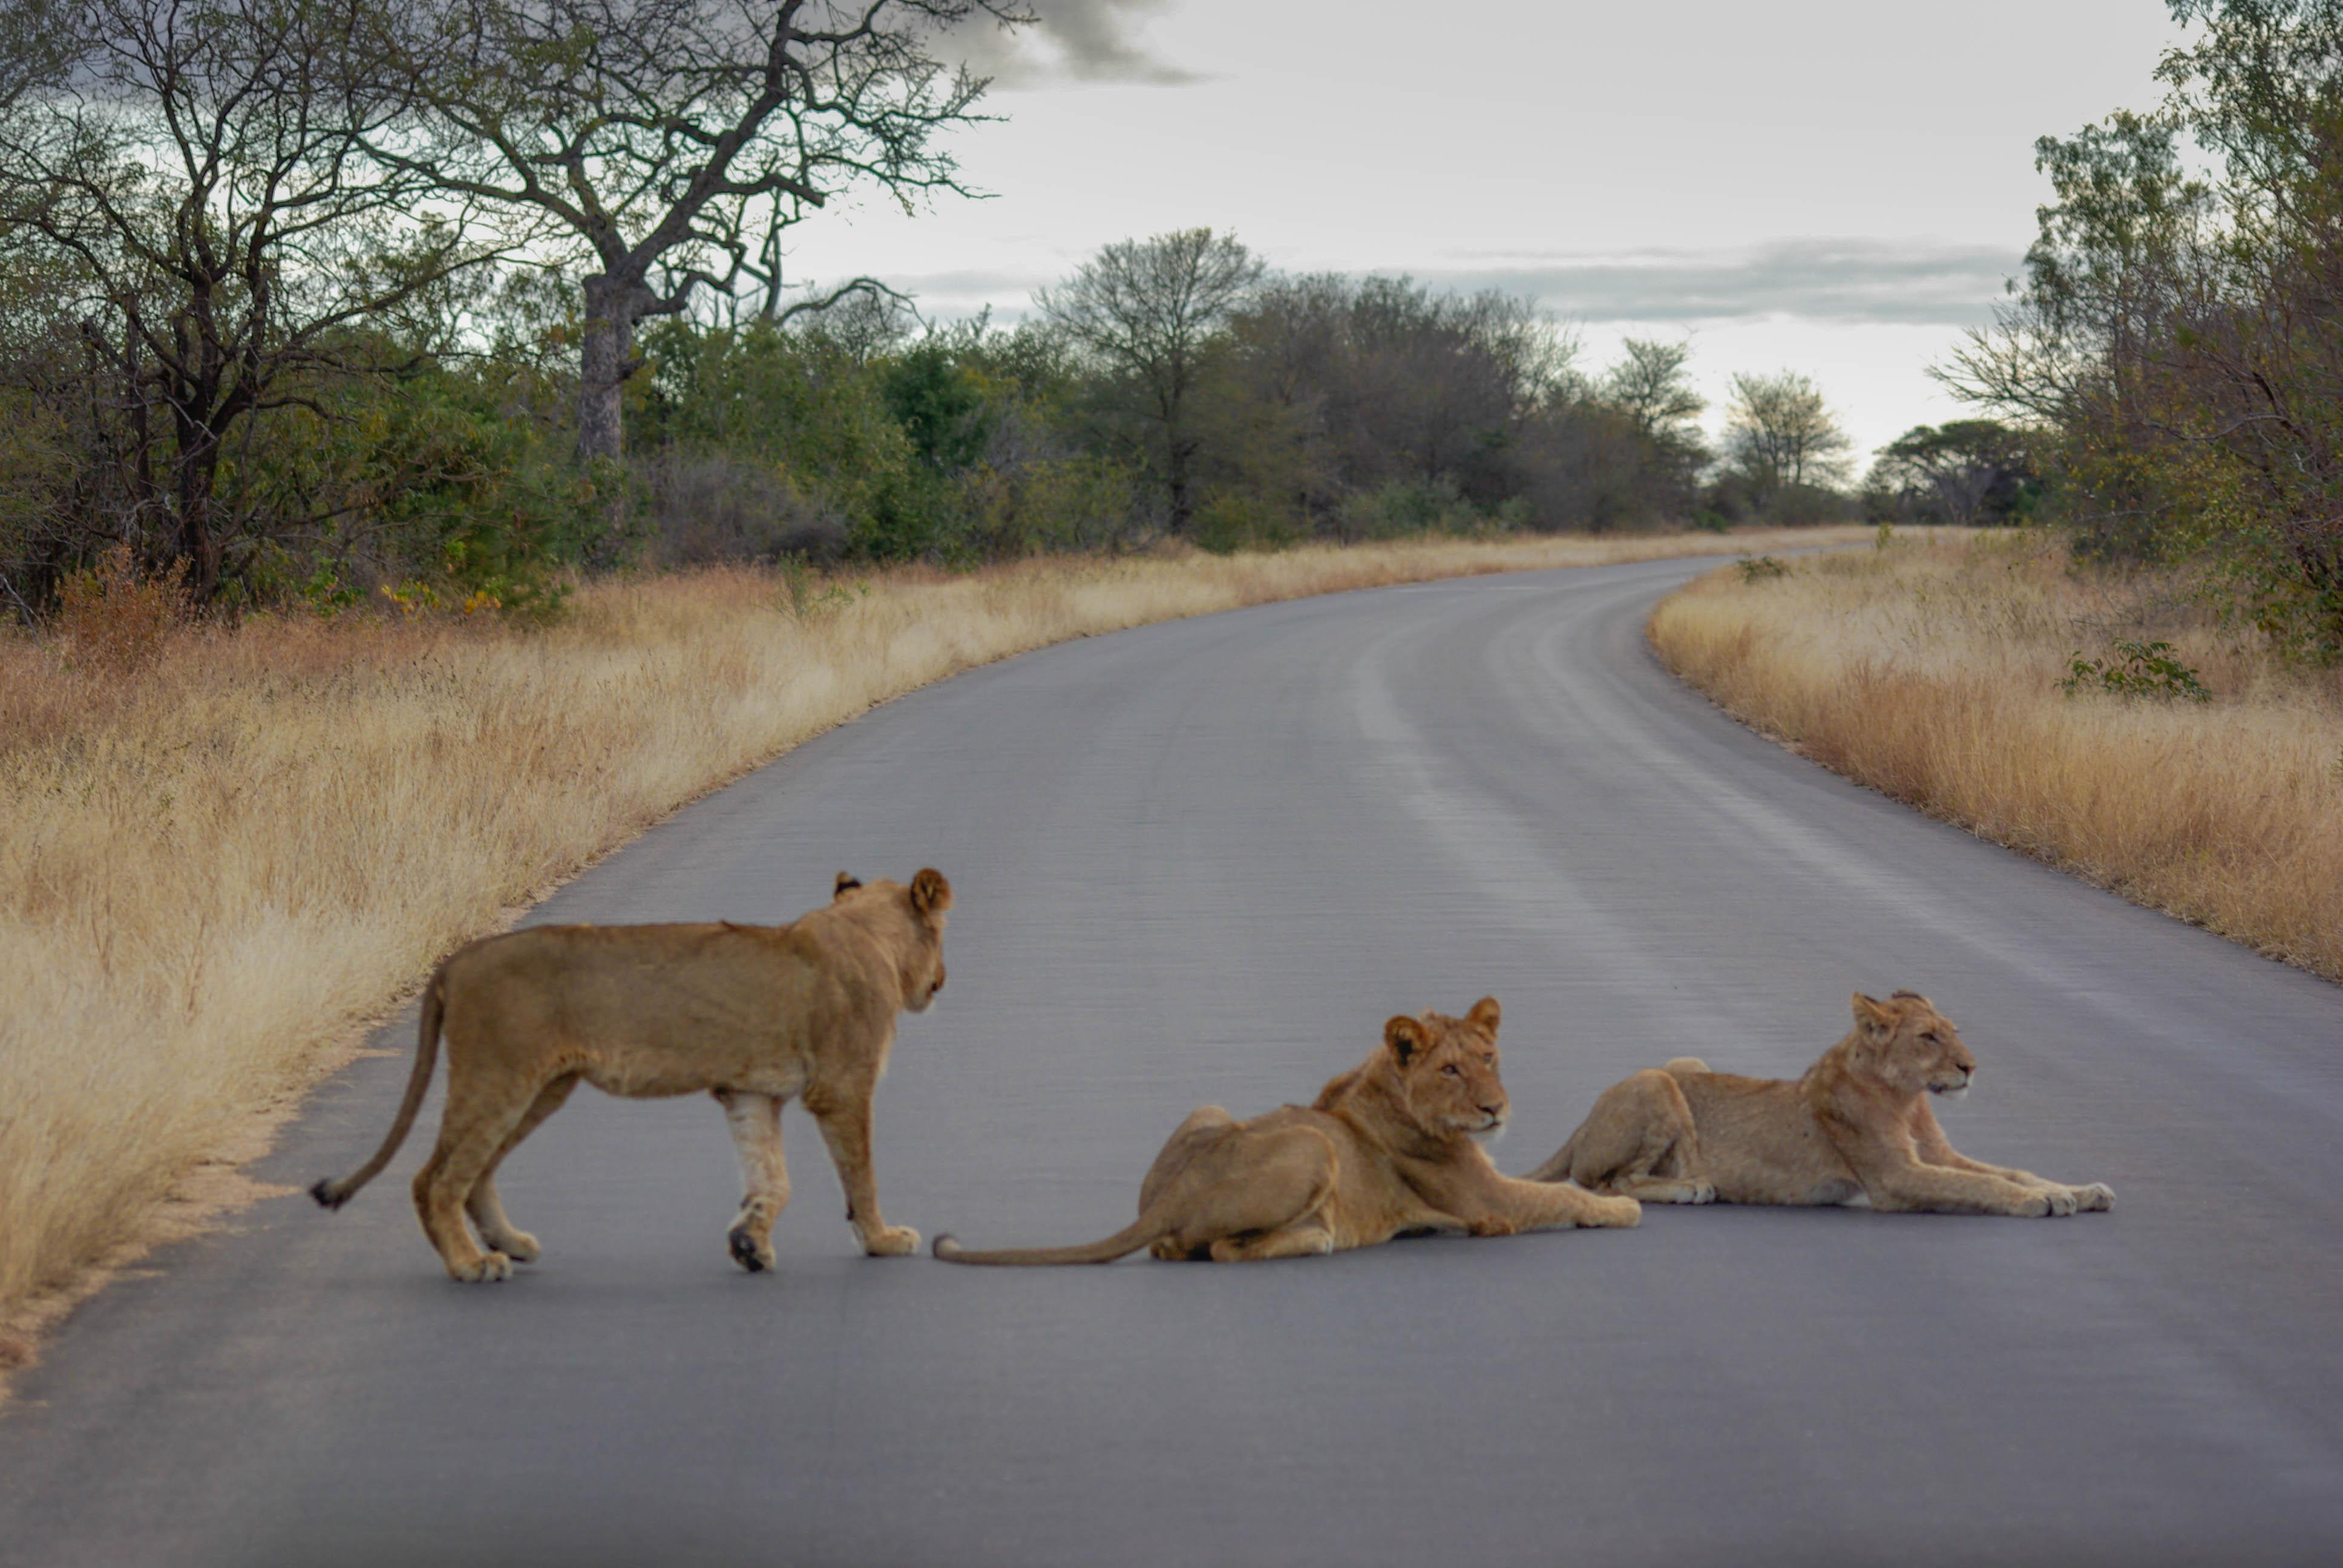 <p>Three clever lionesses make a roadblock to allow their cubs to cross the road.</p>